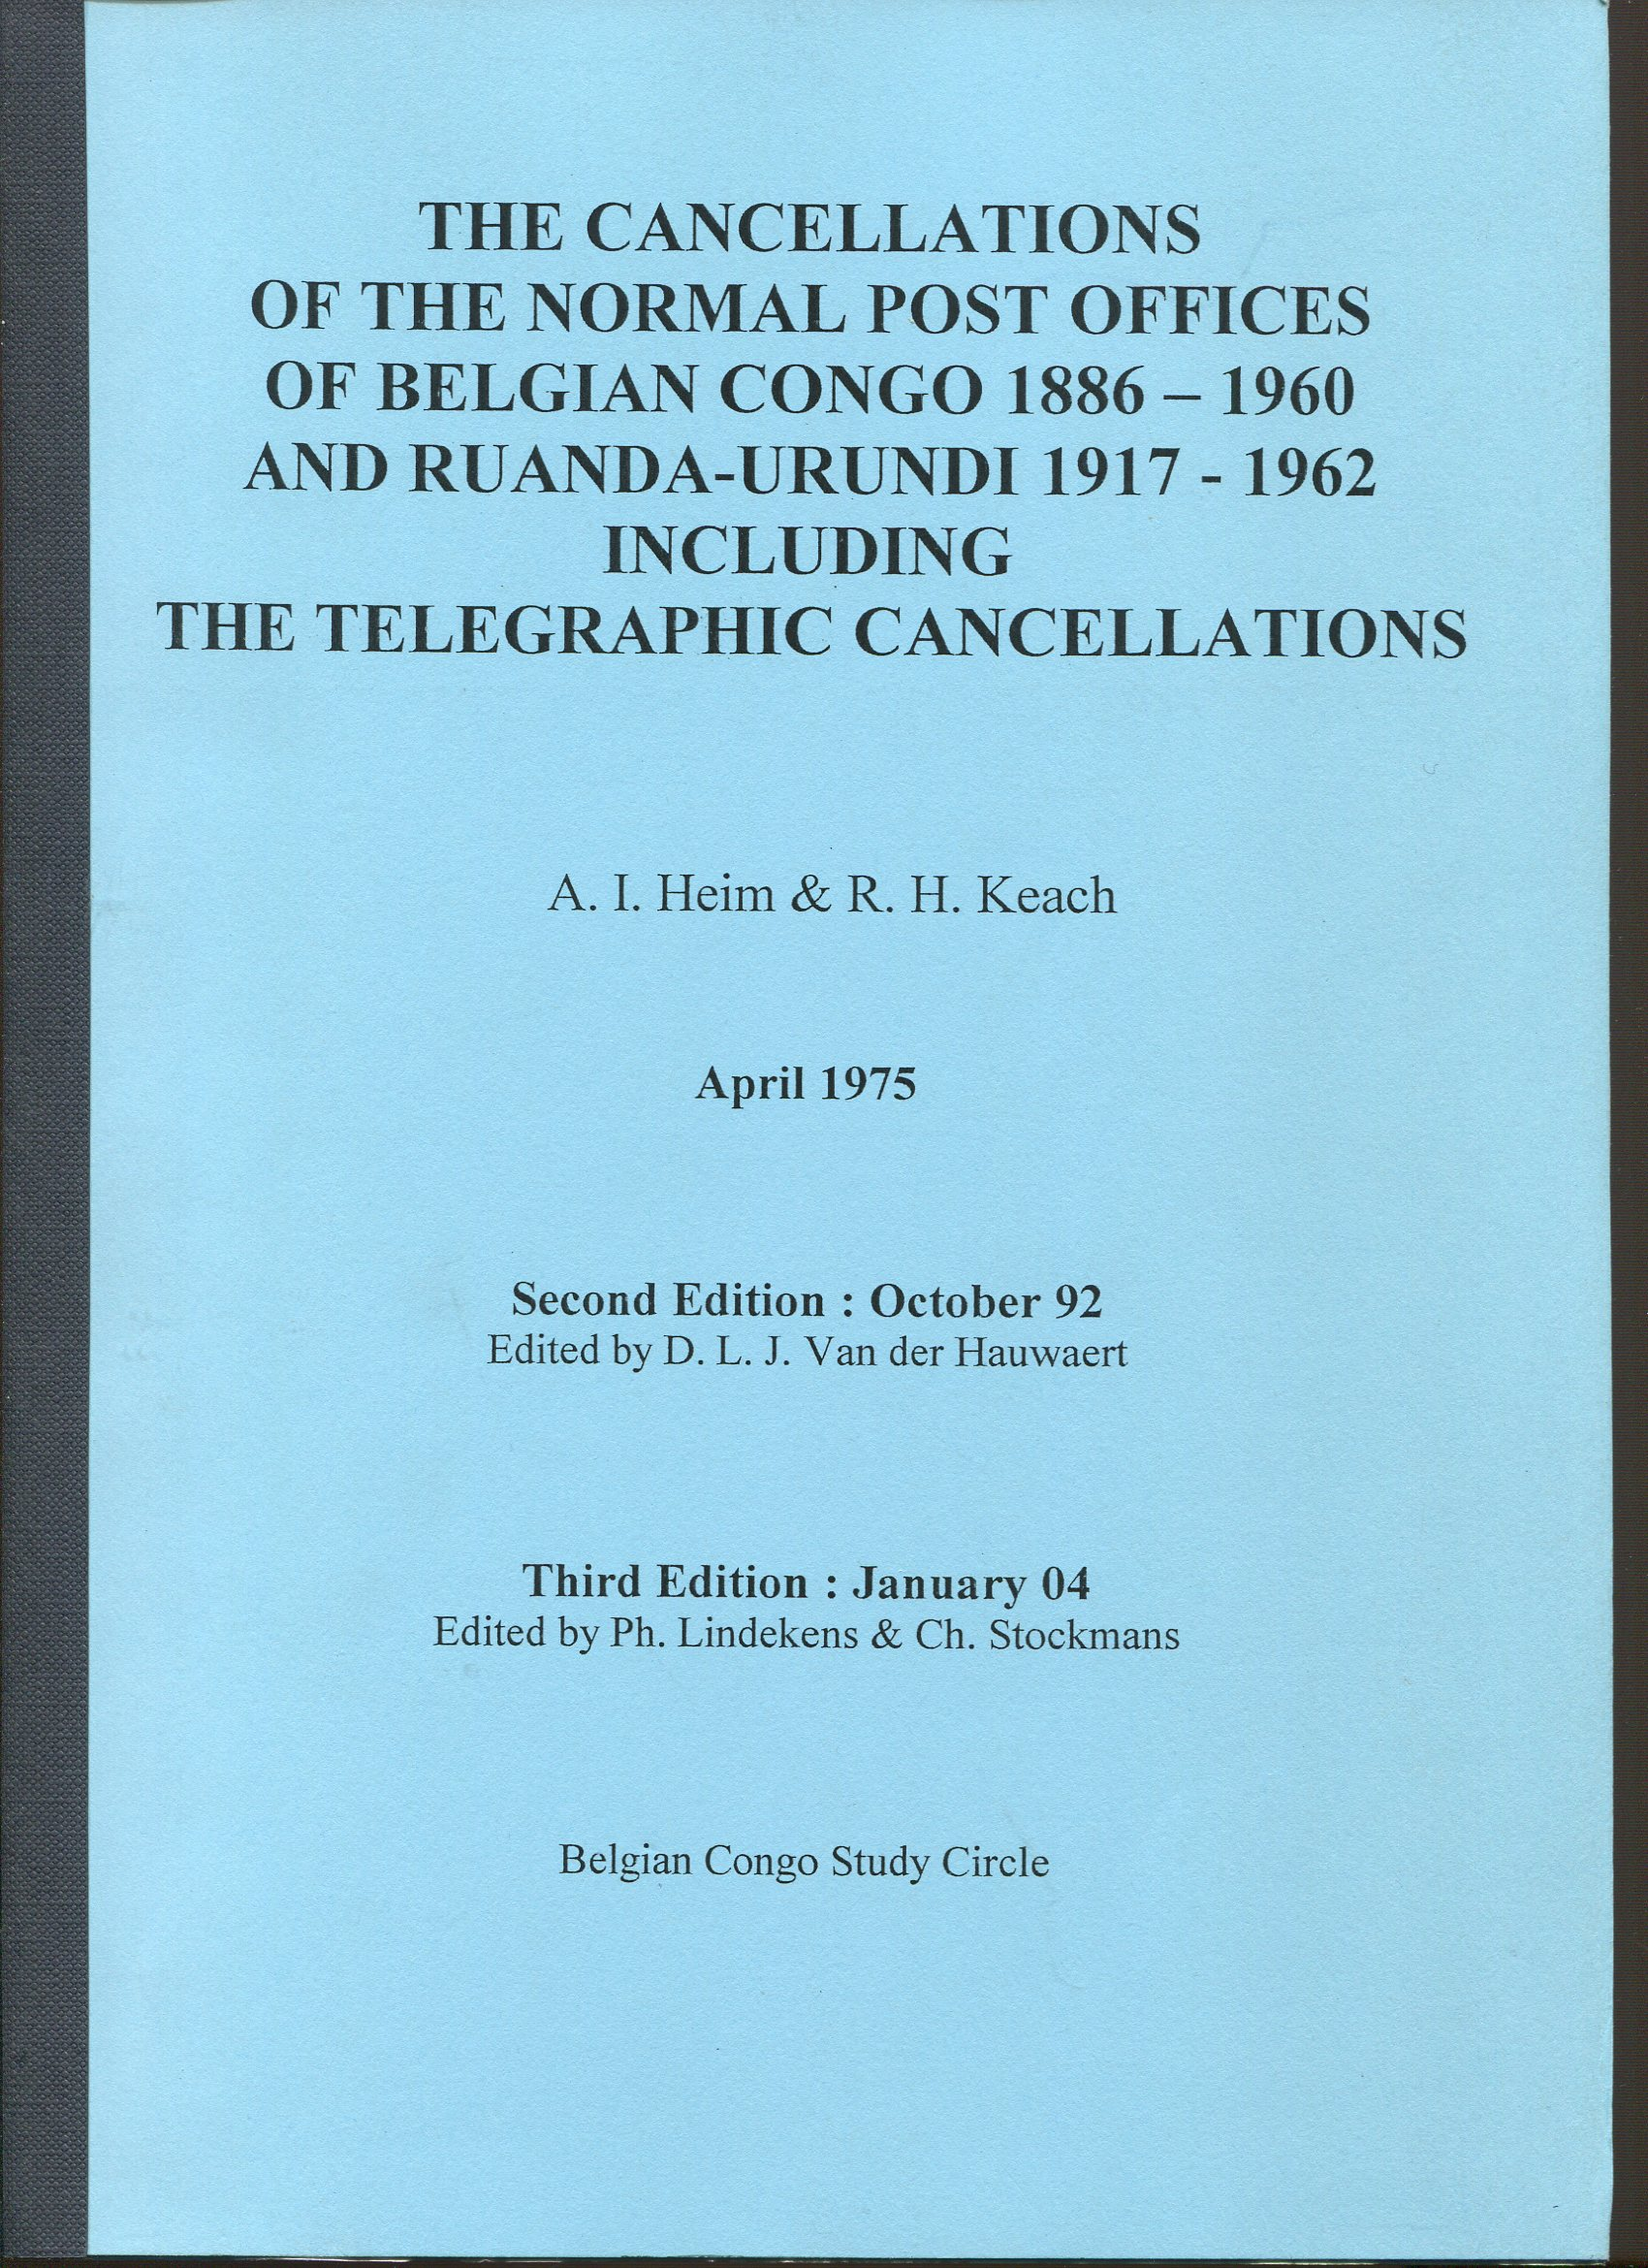 HEIM A.I. and Keach R.H. The Cancellations of the Normal Post Offices of Belgian Congo 1886-1960 and Ruanda-Urundi 1917-1962 including the Telegraphic Cancellations